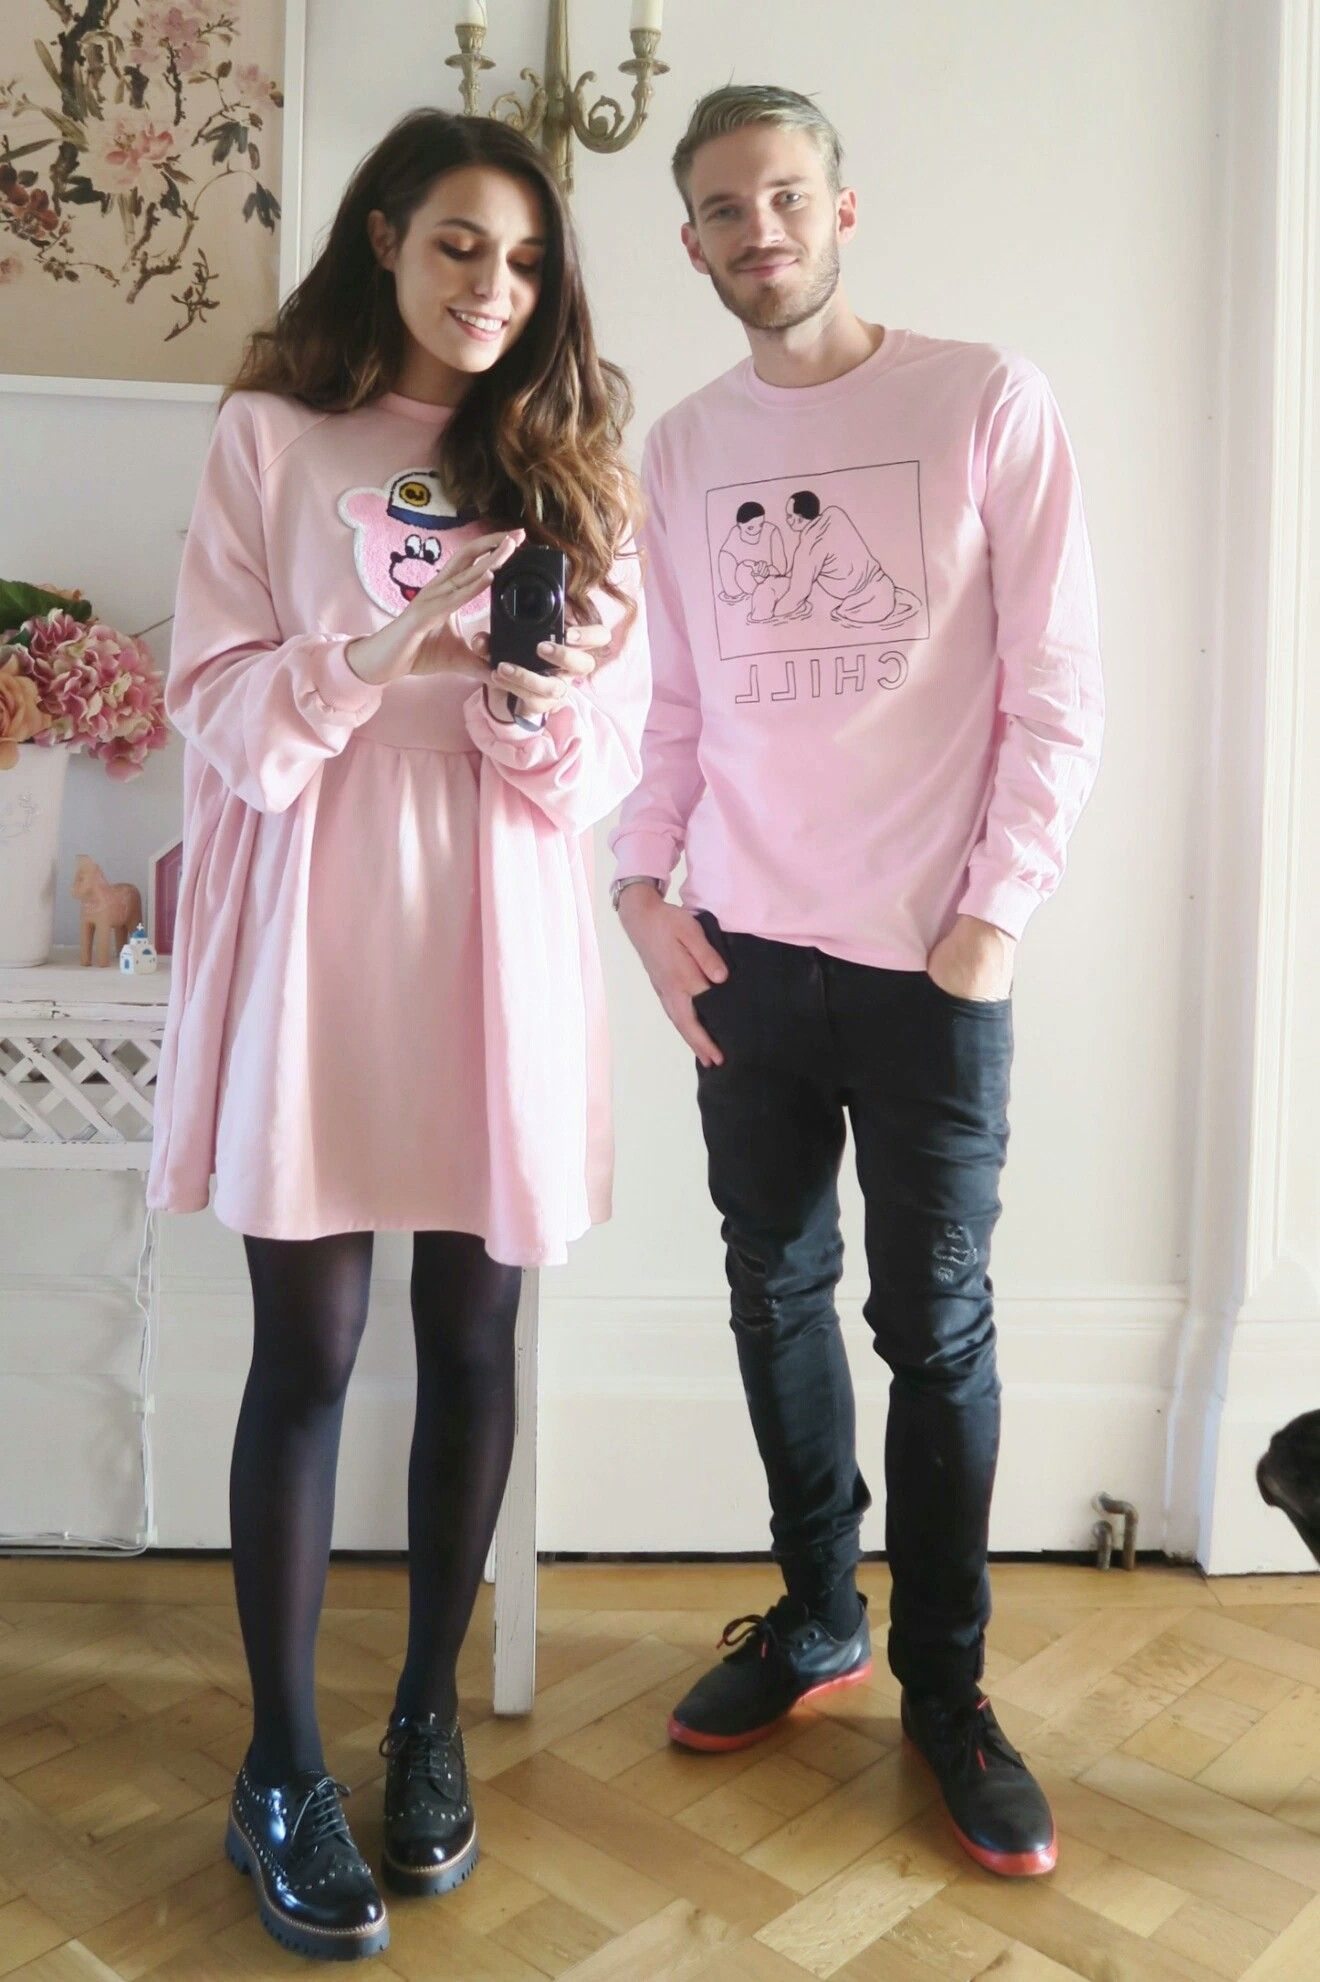 Couple goals am i right cutiepiemarzia pinterest goal style icons m4hsunfo Image collections